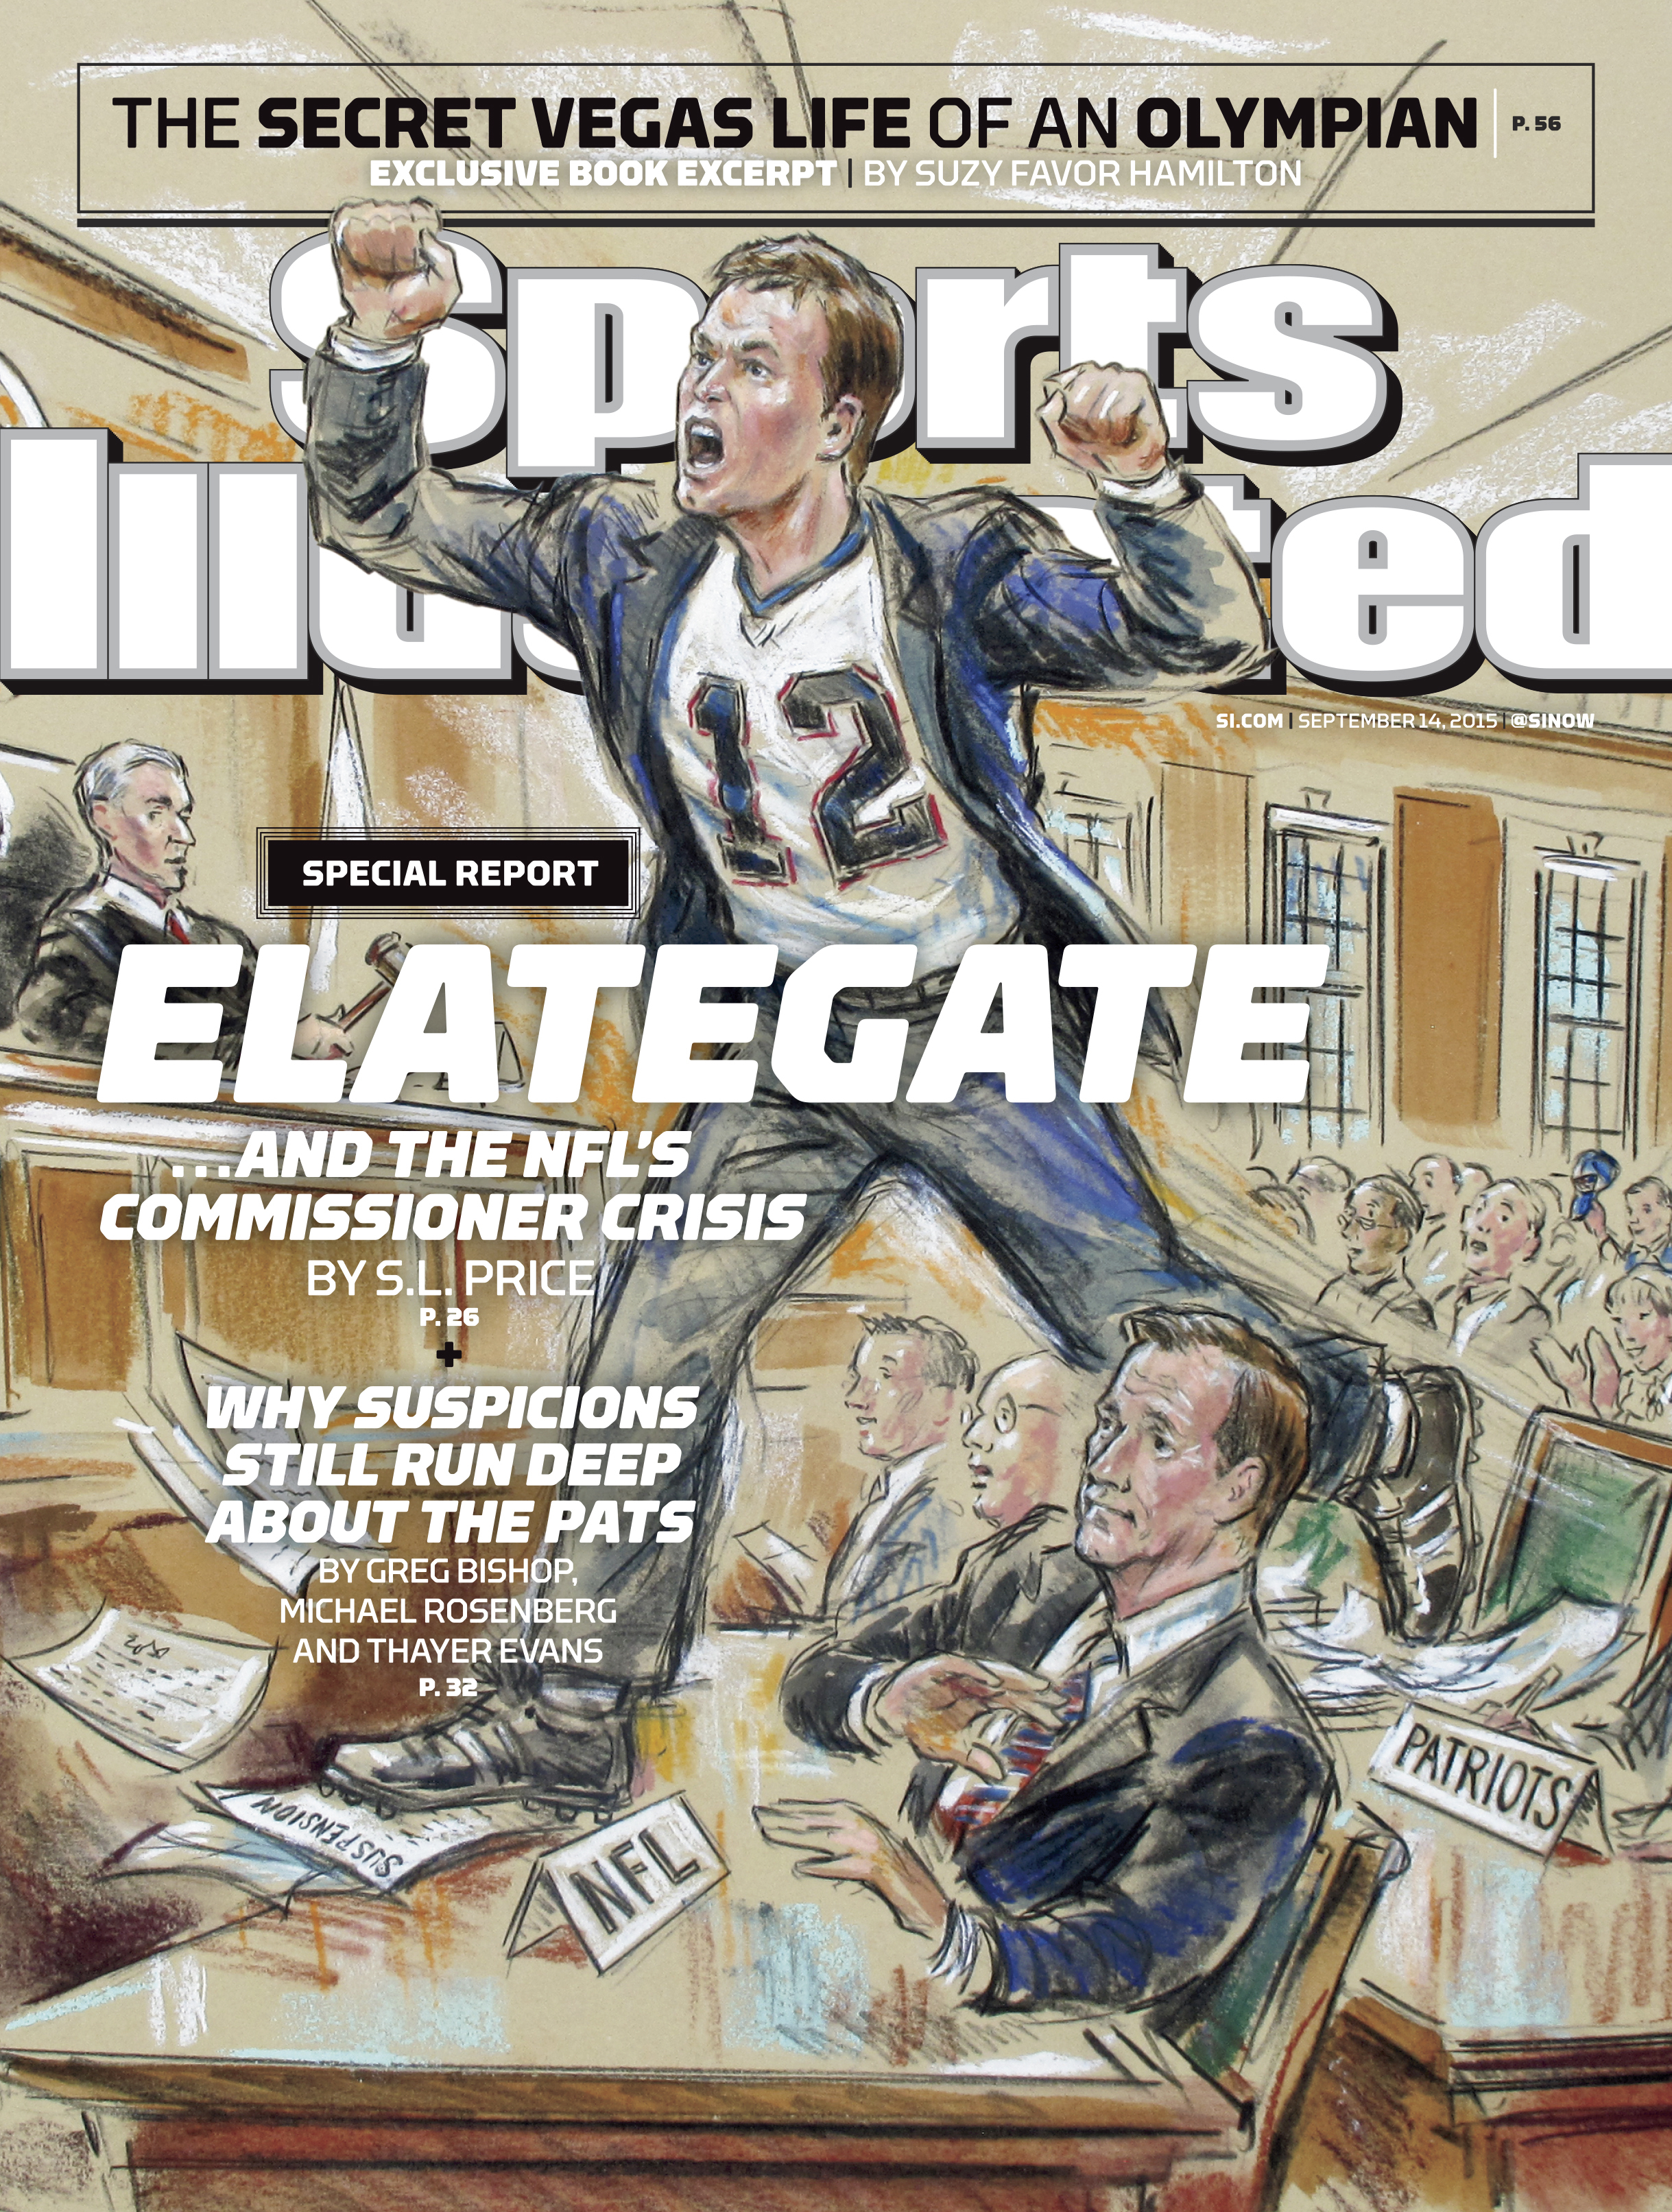 Sports Illustrated features Brady sketch on cover - The